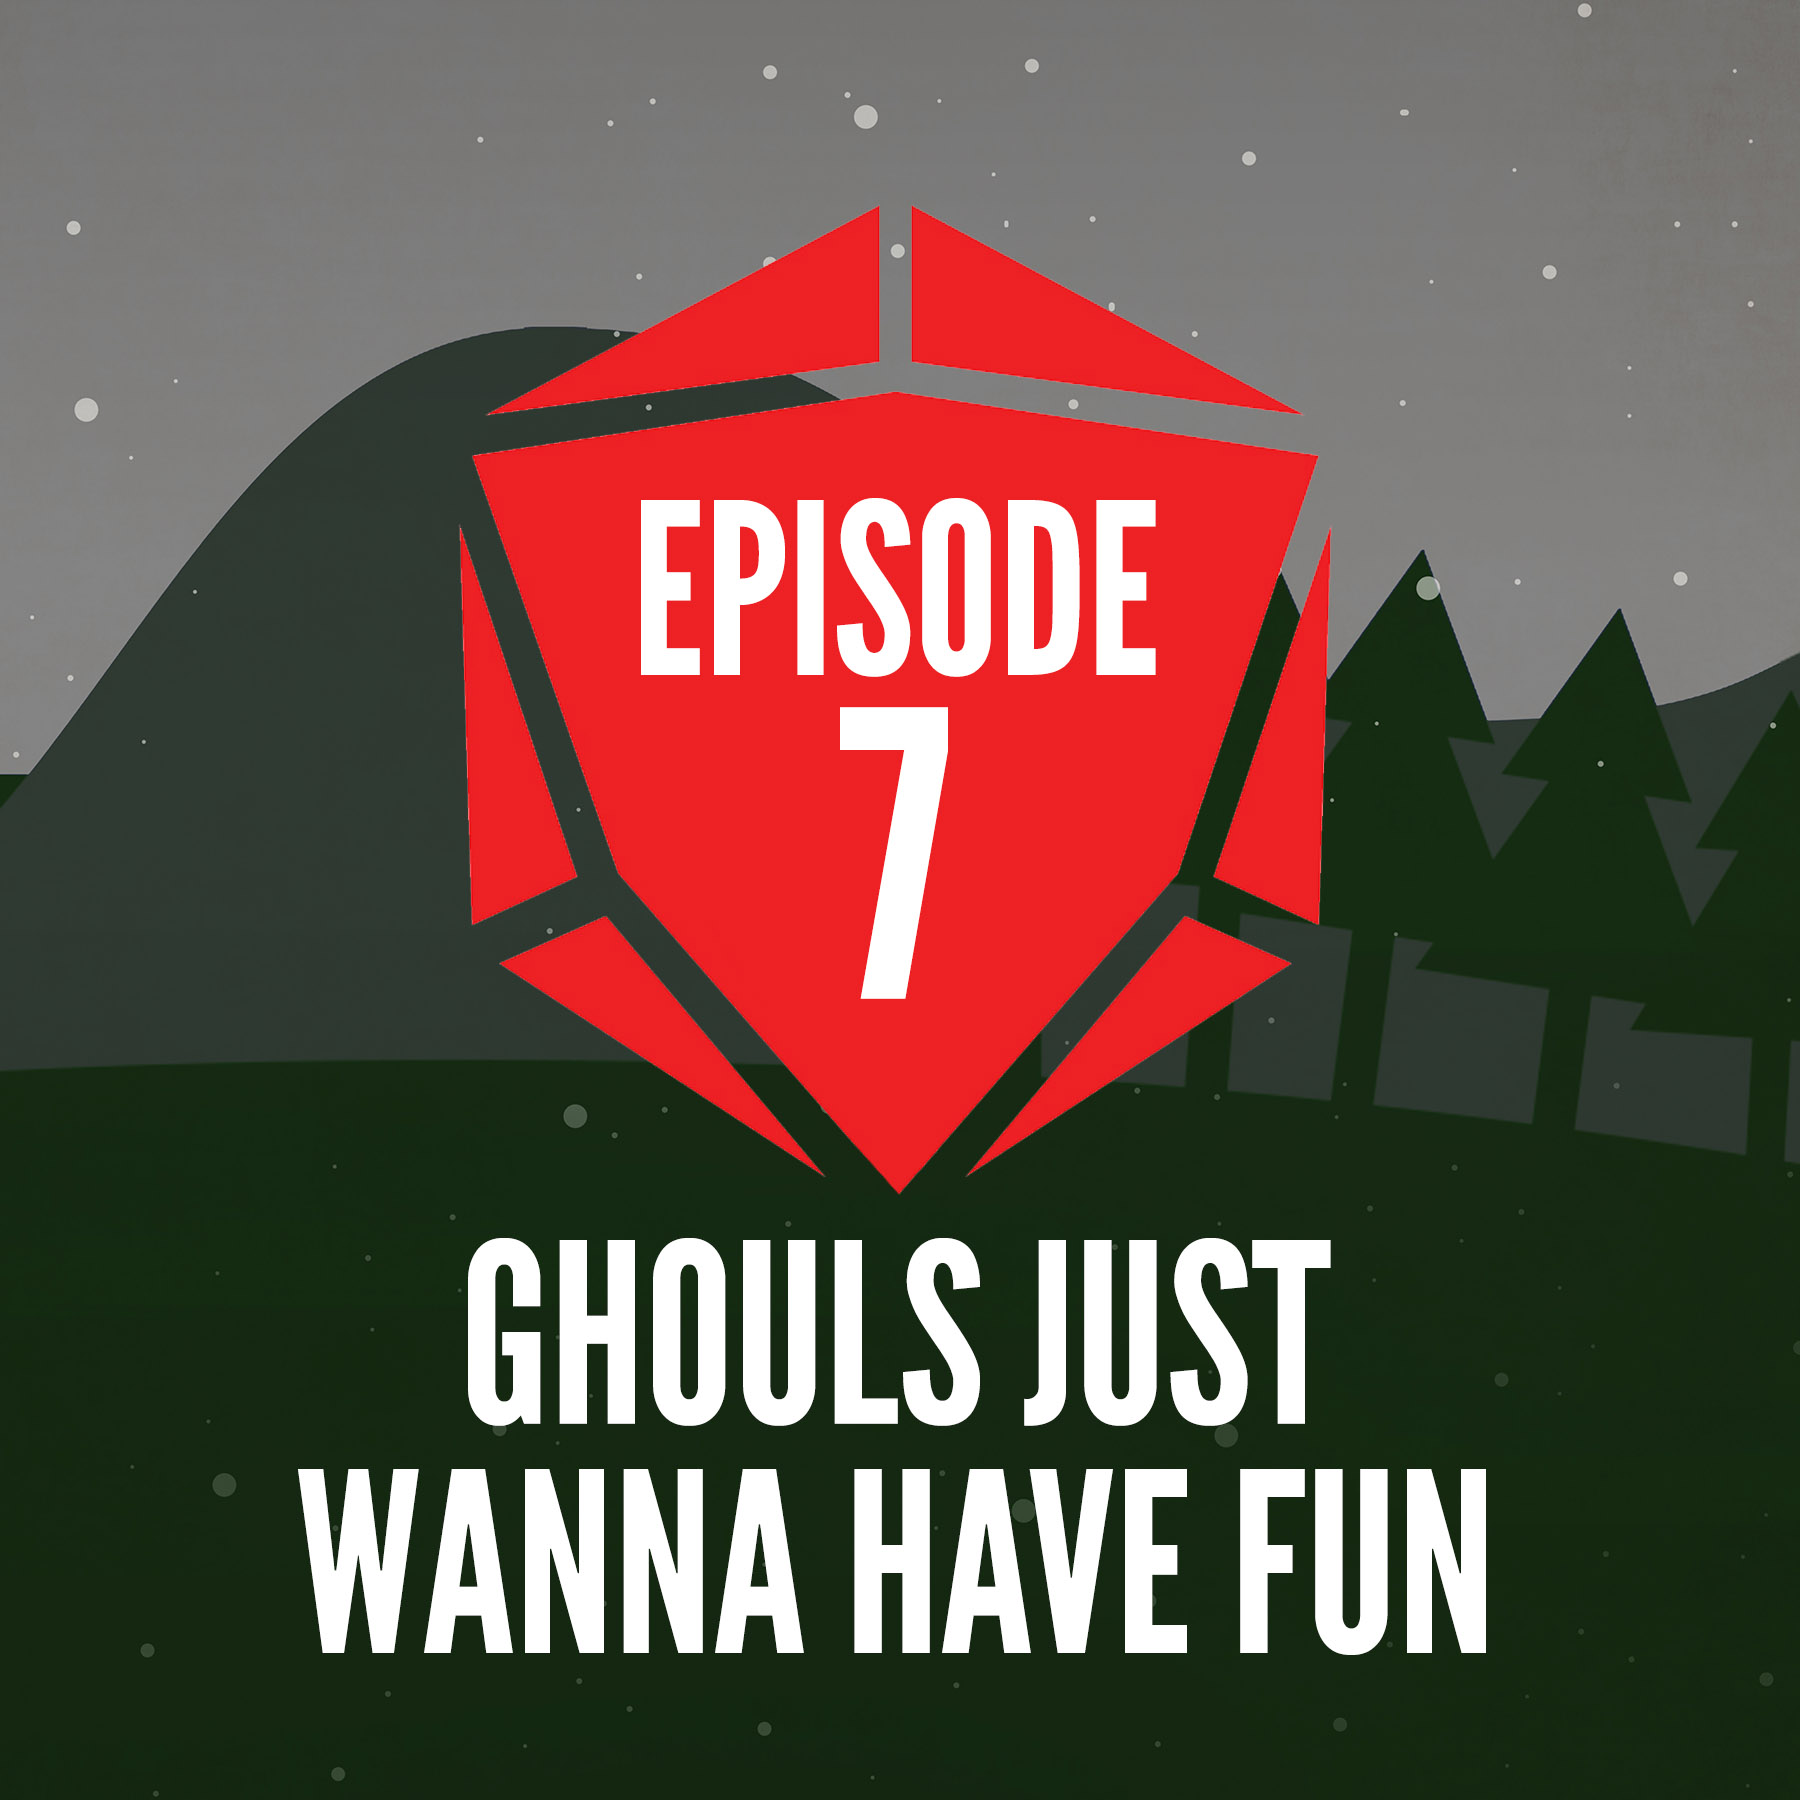 Episode 7: Ghouls Just Wanna Have Fun